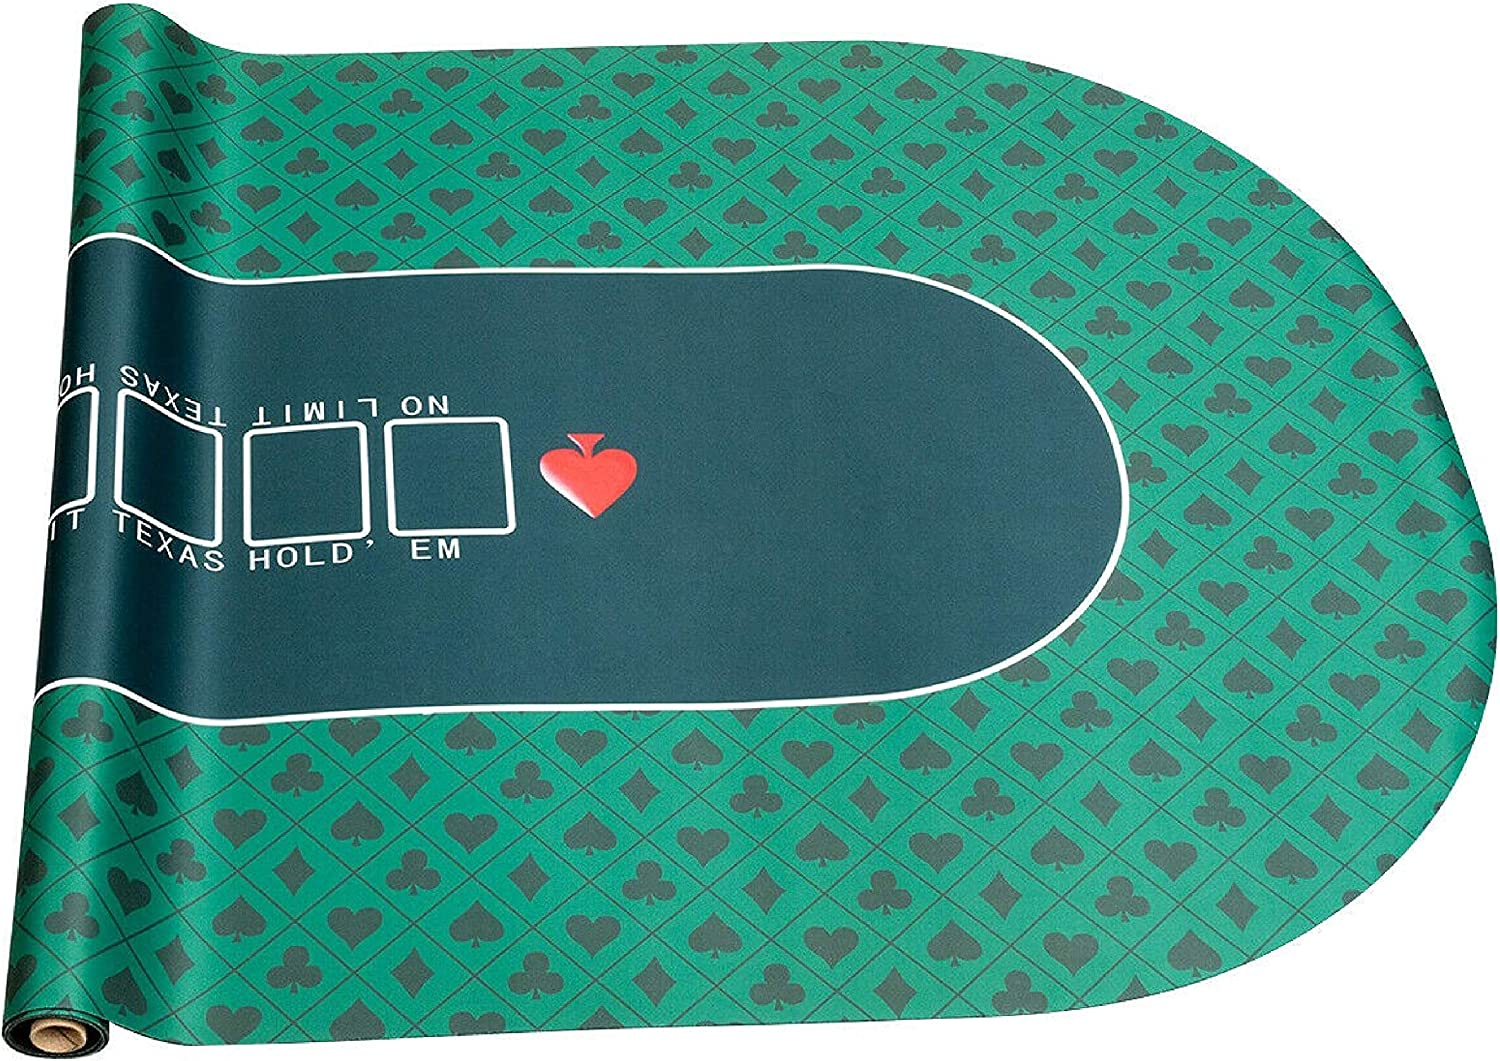 71 x 36 Portable Poker Table Top with Carrying Bag HomyDelight Table Accessory